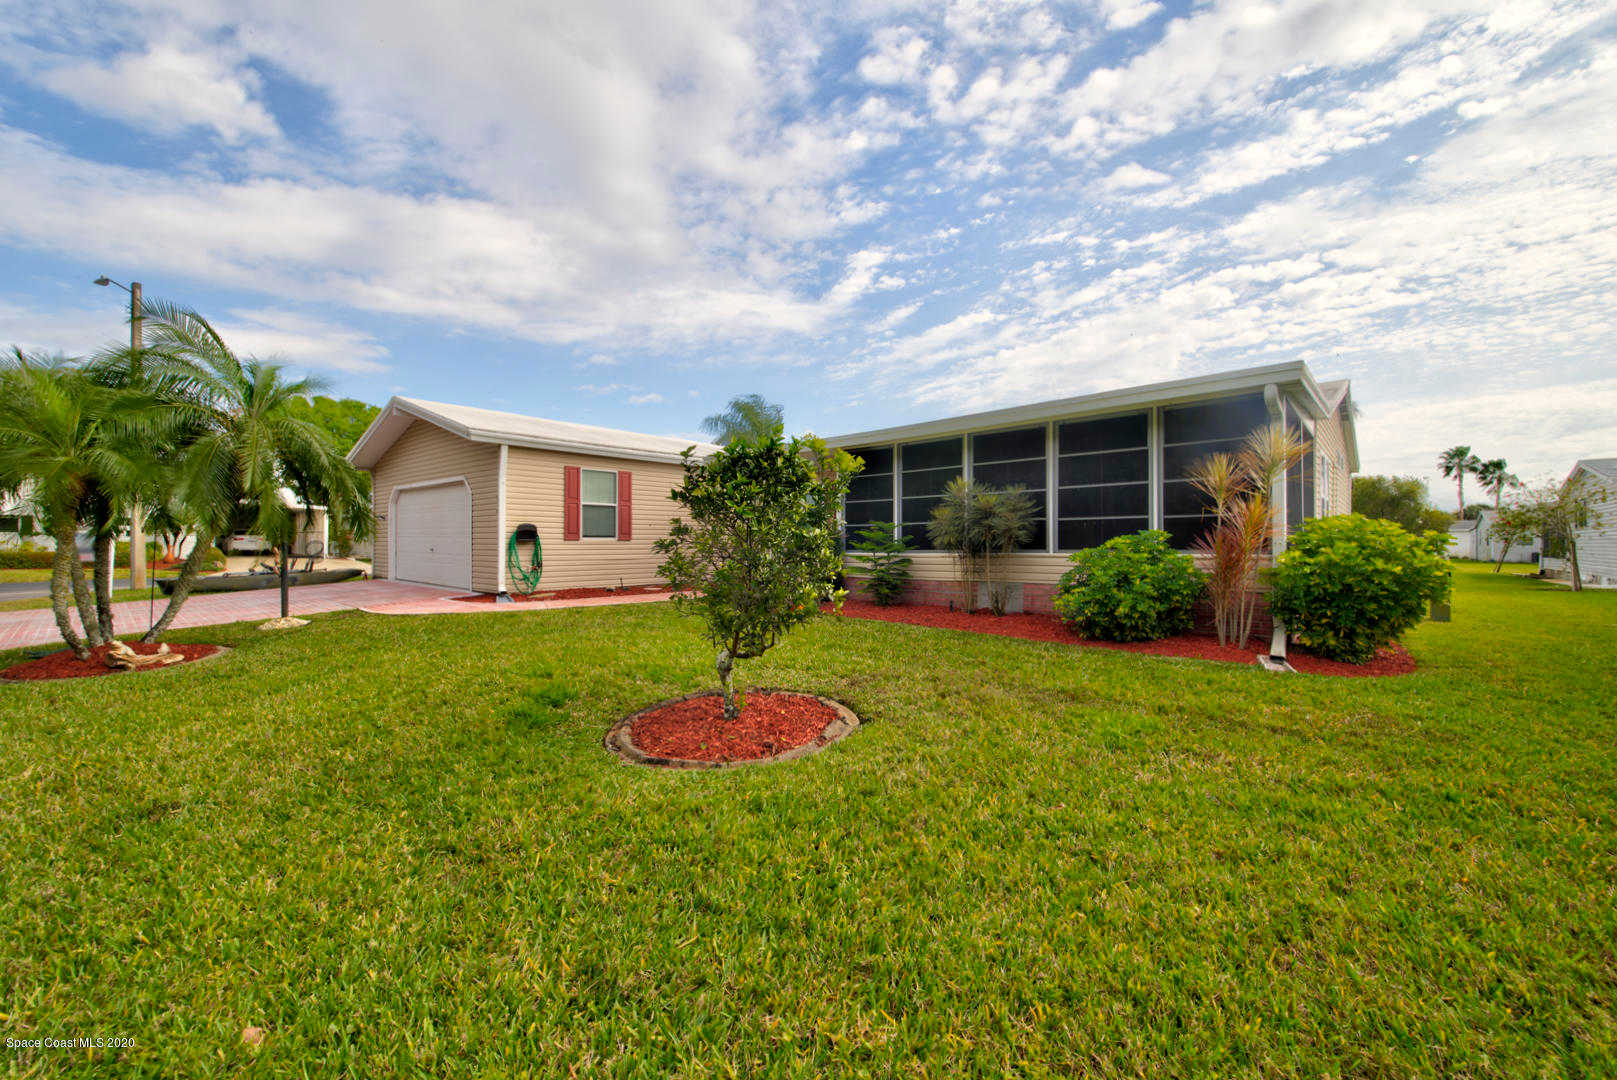 129 Woodsman Mark #238, Cocoa, FL 32926 is now new to the market!